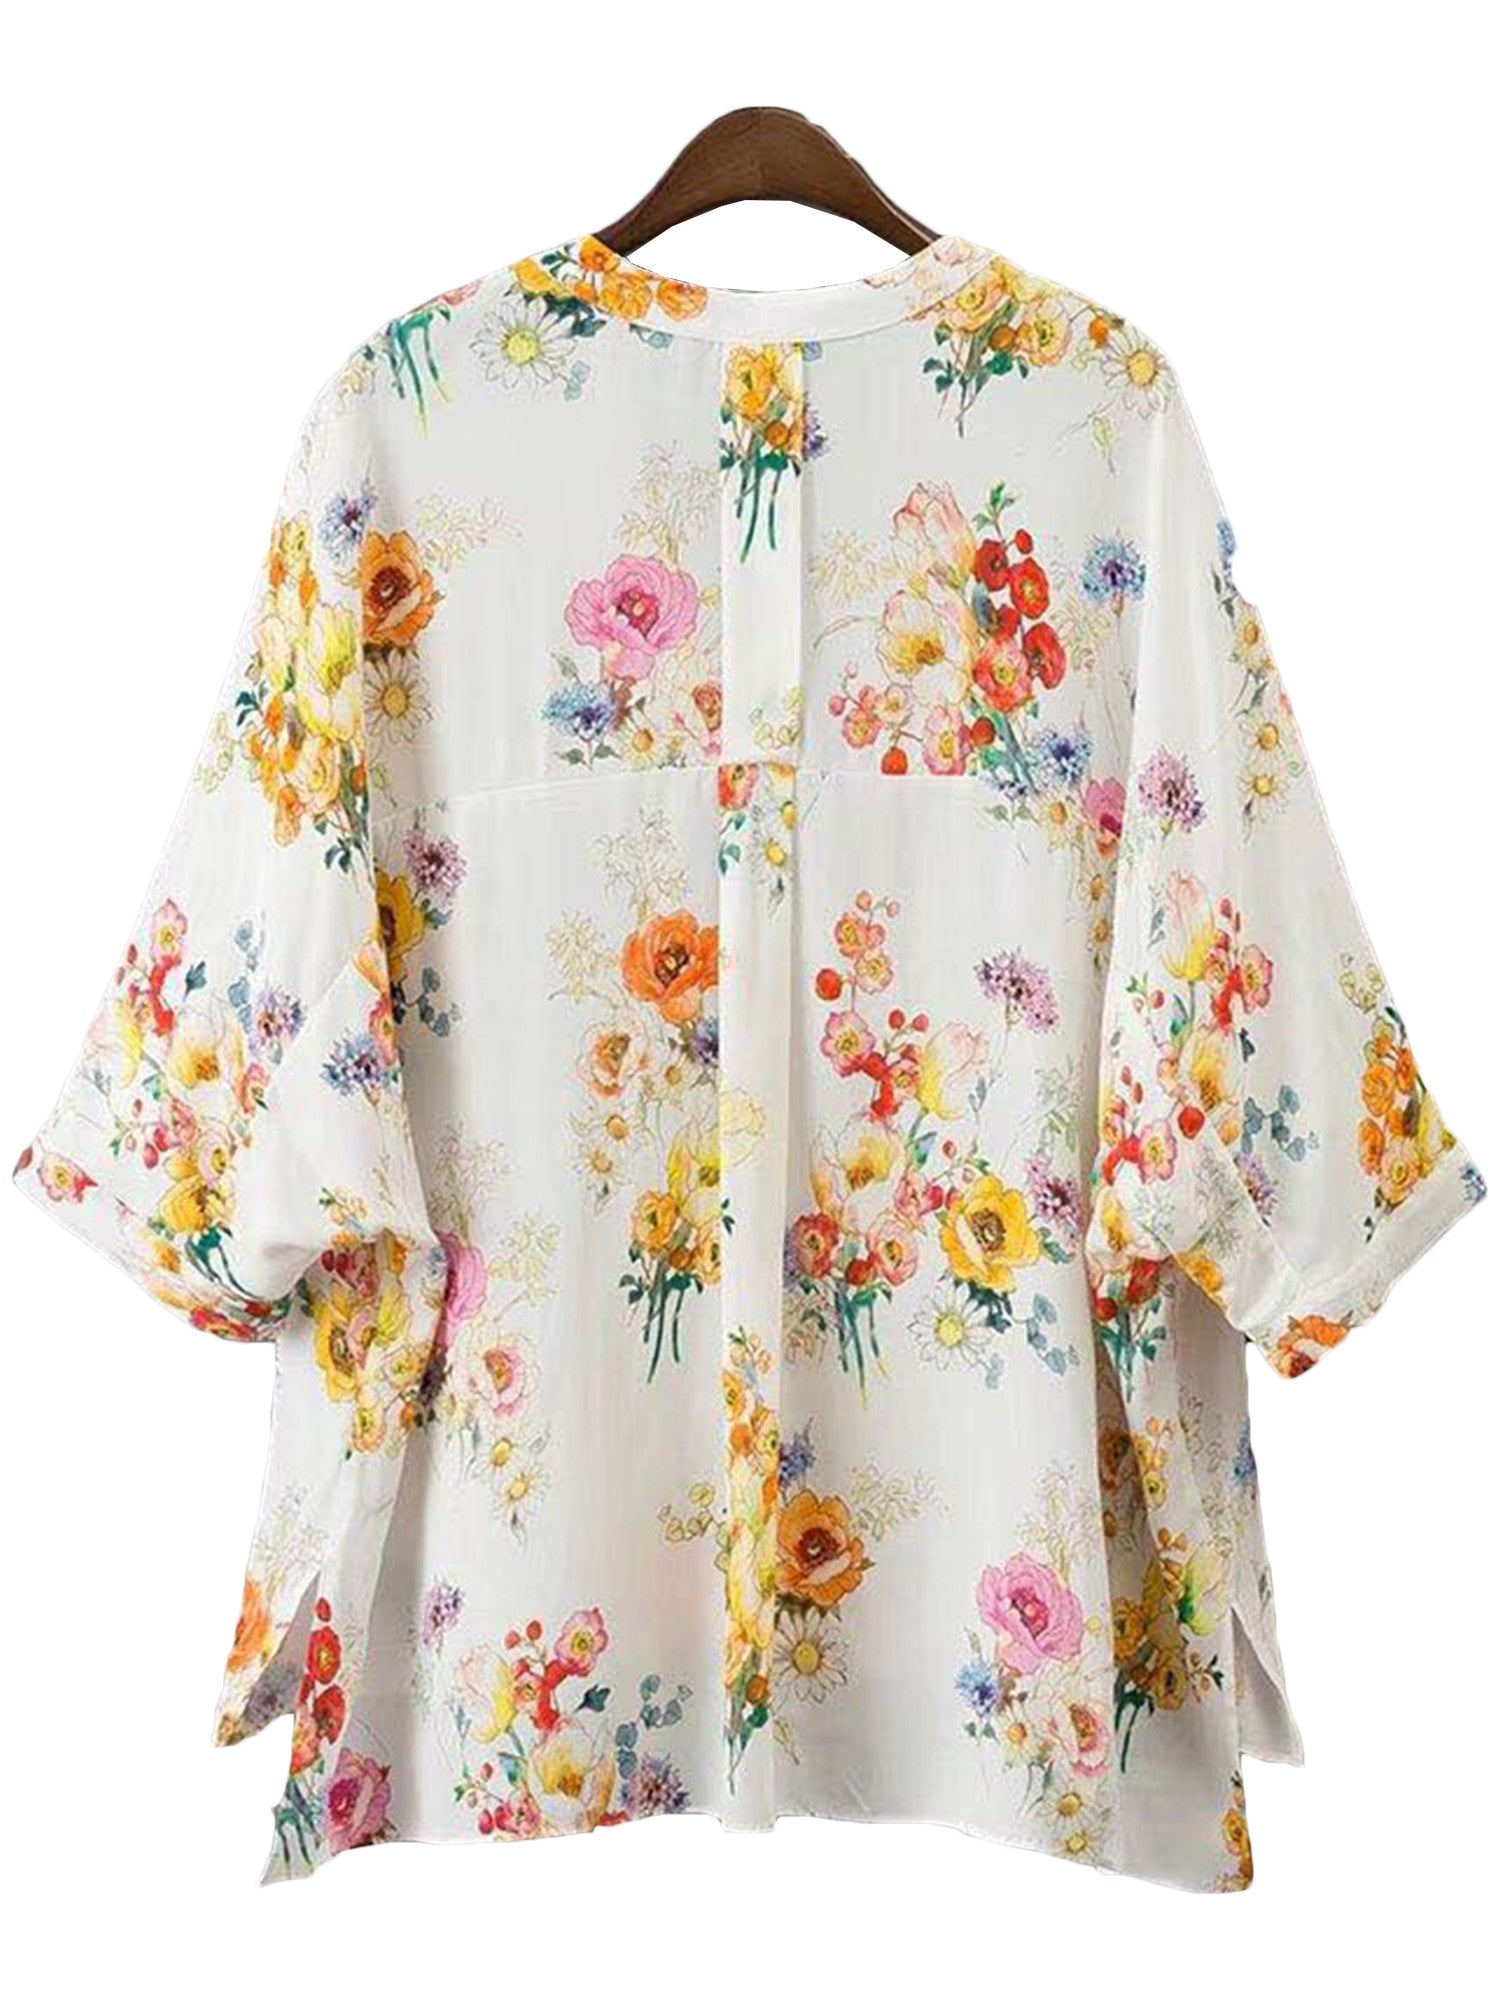 'Monique' Floral V-neck Blouse